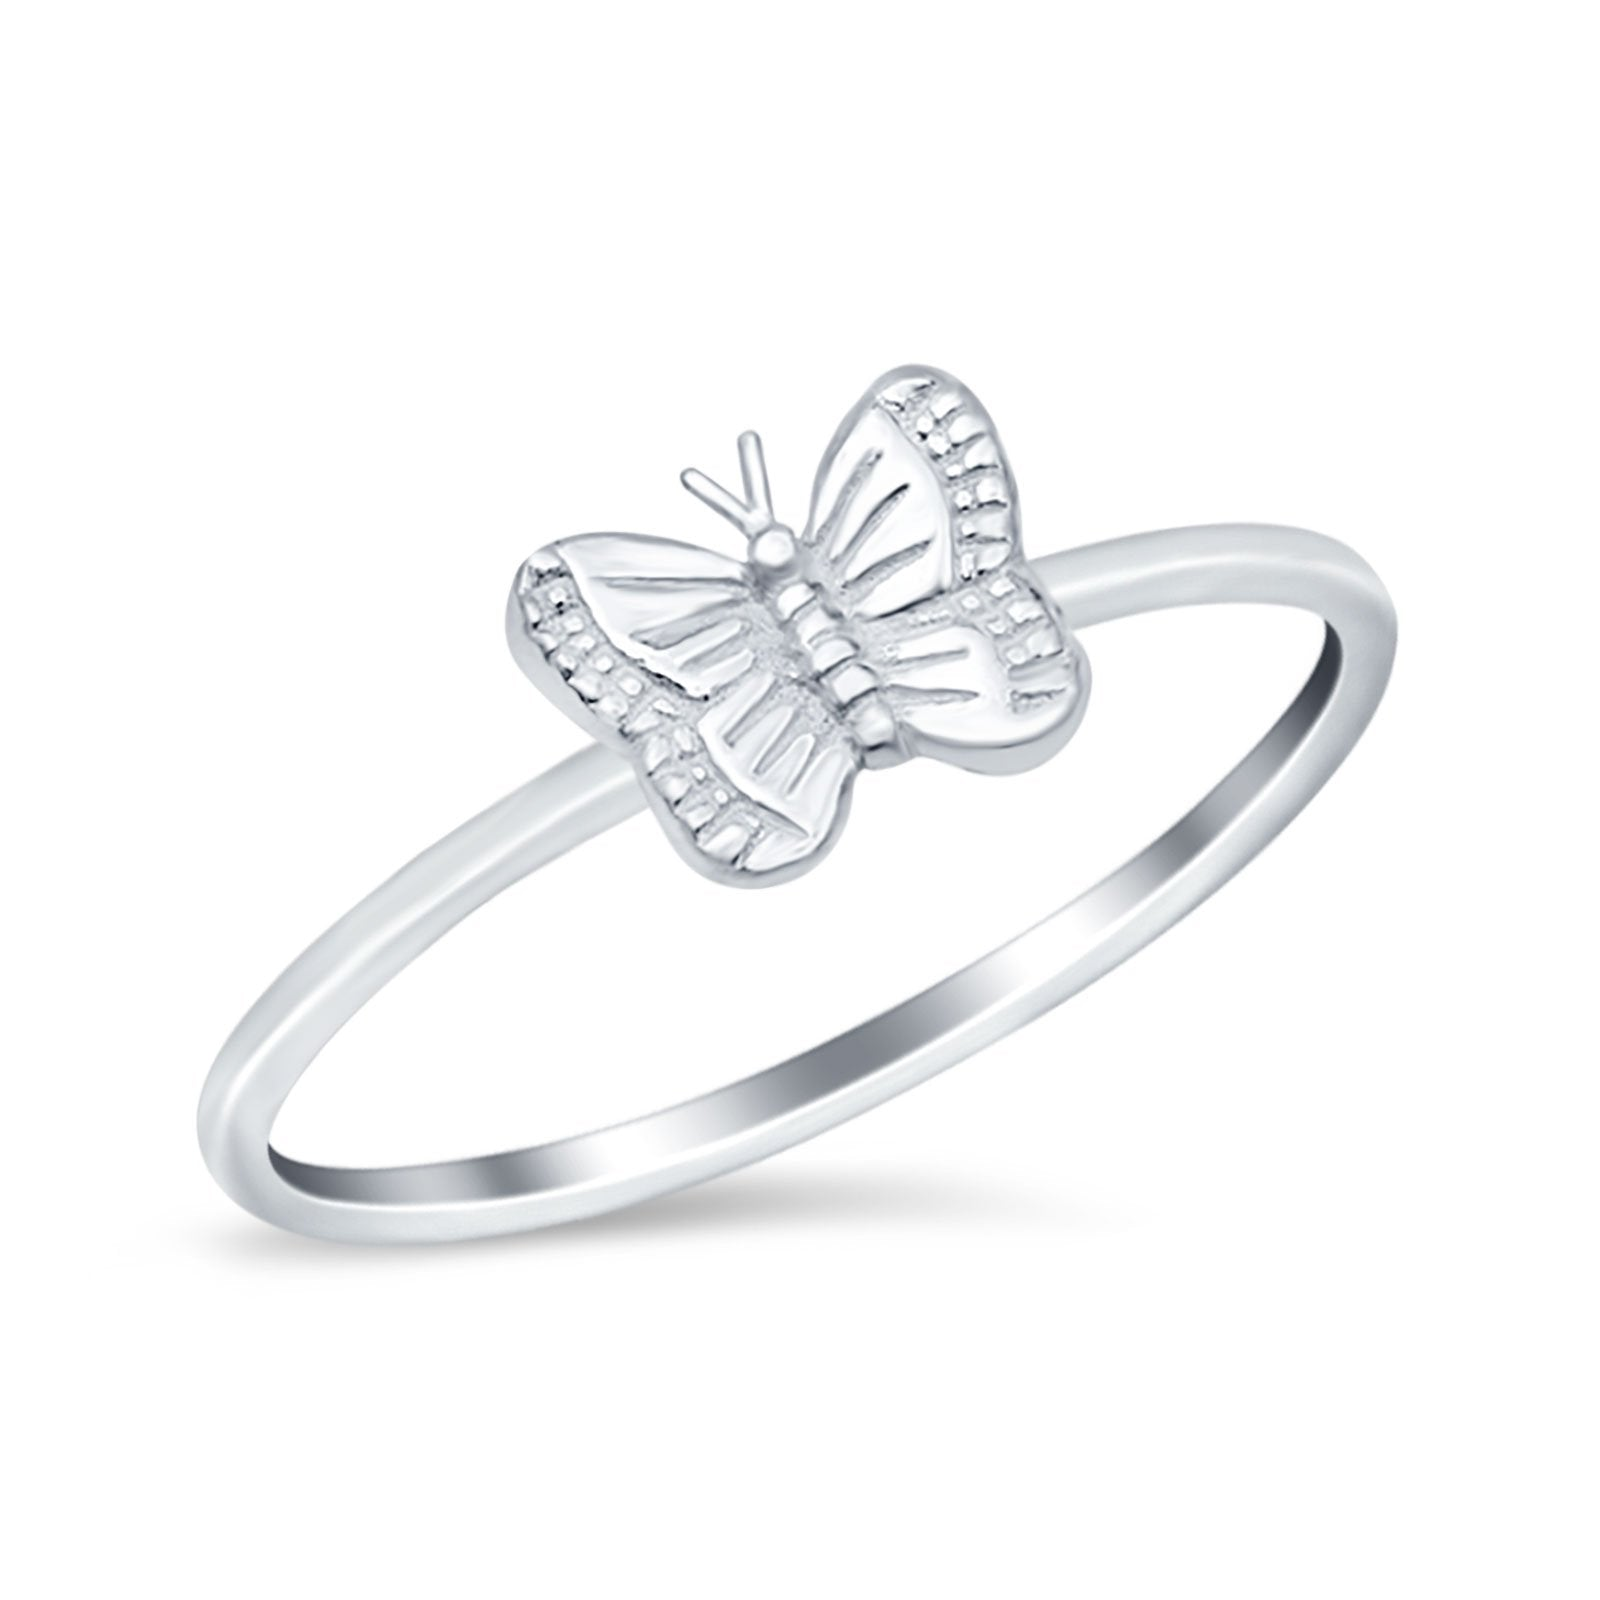 Petite Dainty Butterfly Ring Thumb Band Round 925 Sterling Silver